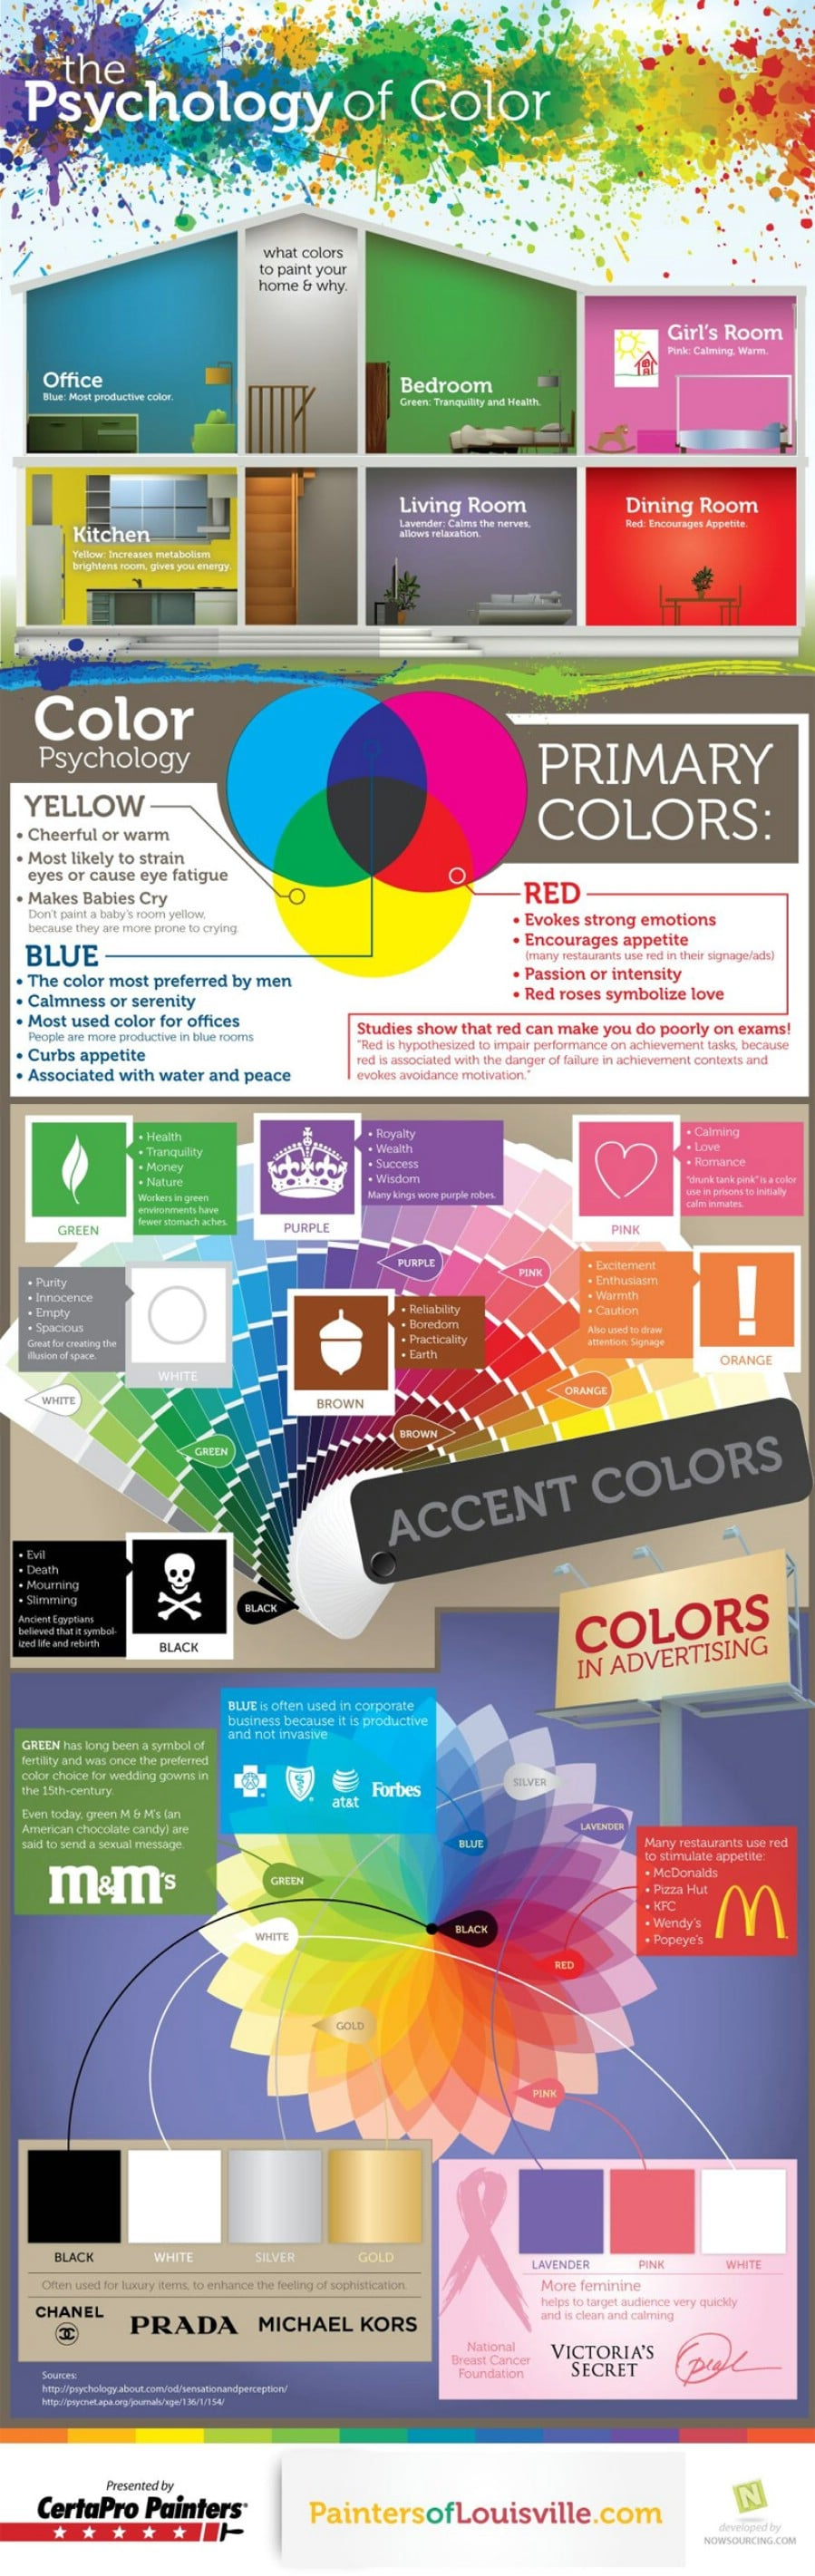 23. Discover color psychology - 50 Amazingly Clever Cheat Sheets To Simplify Home Decorating Projects